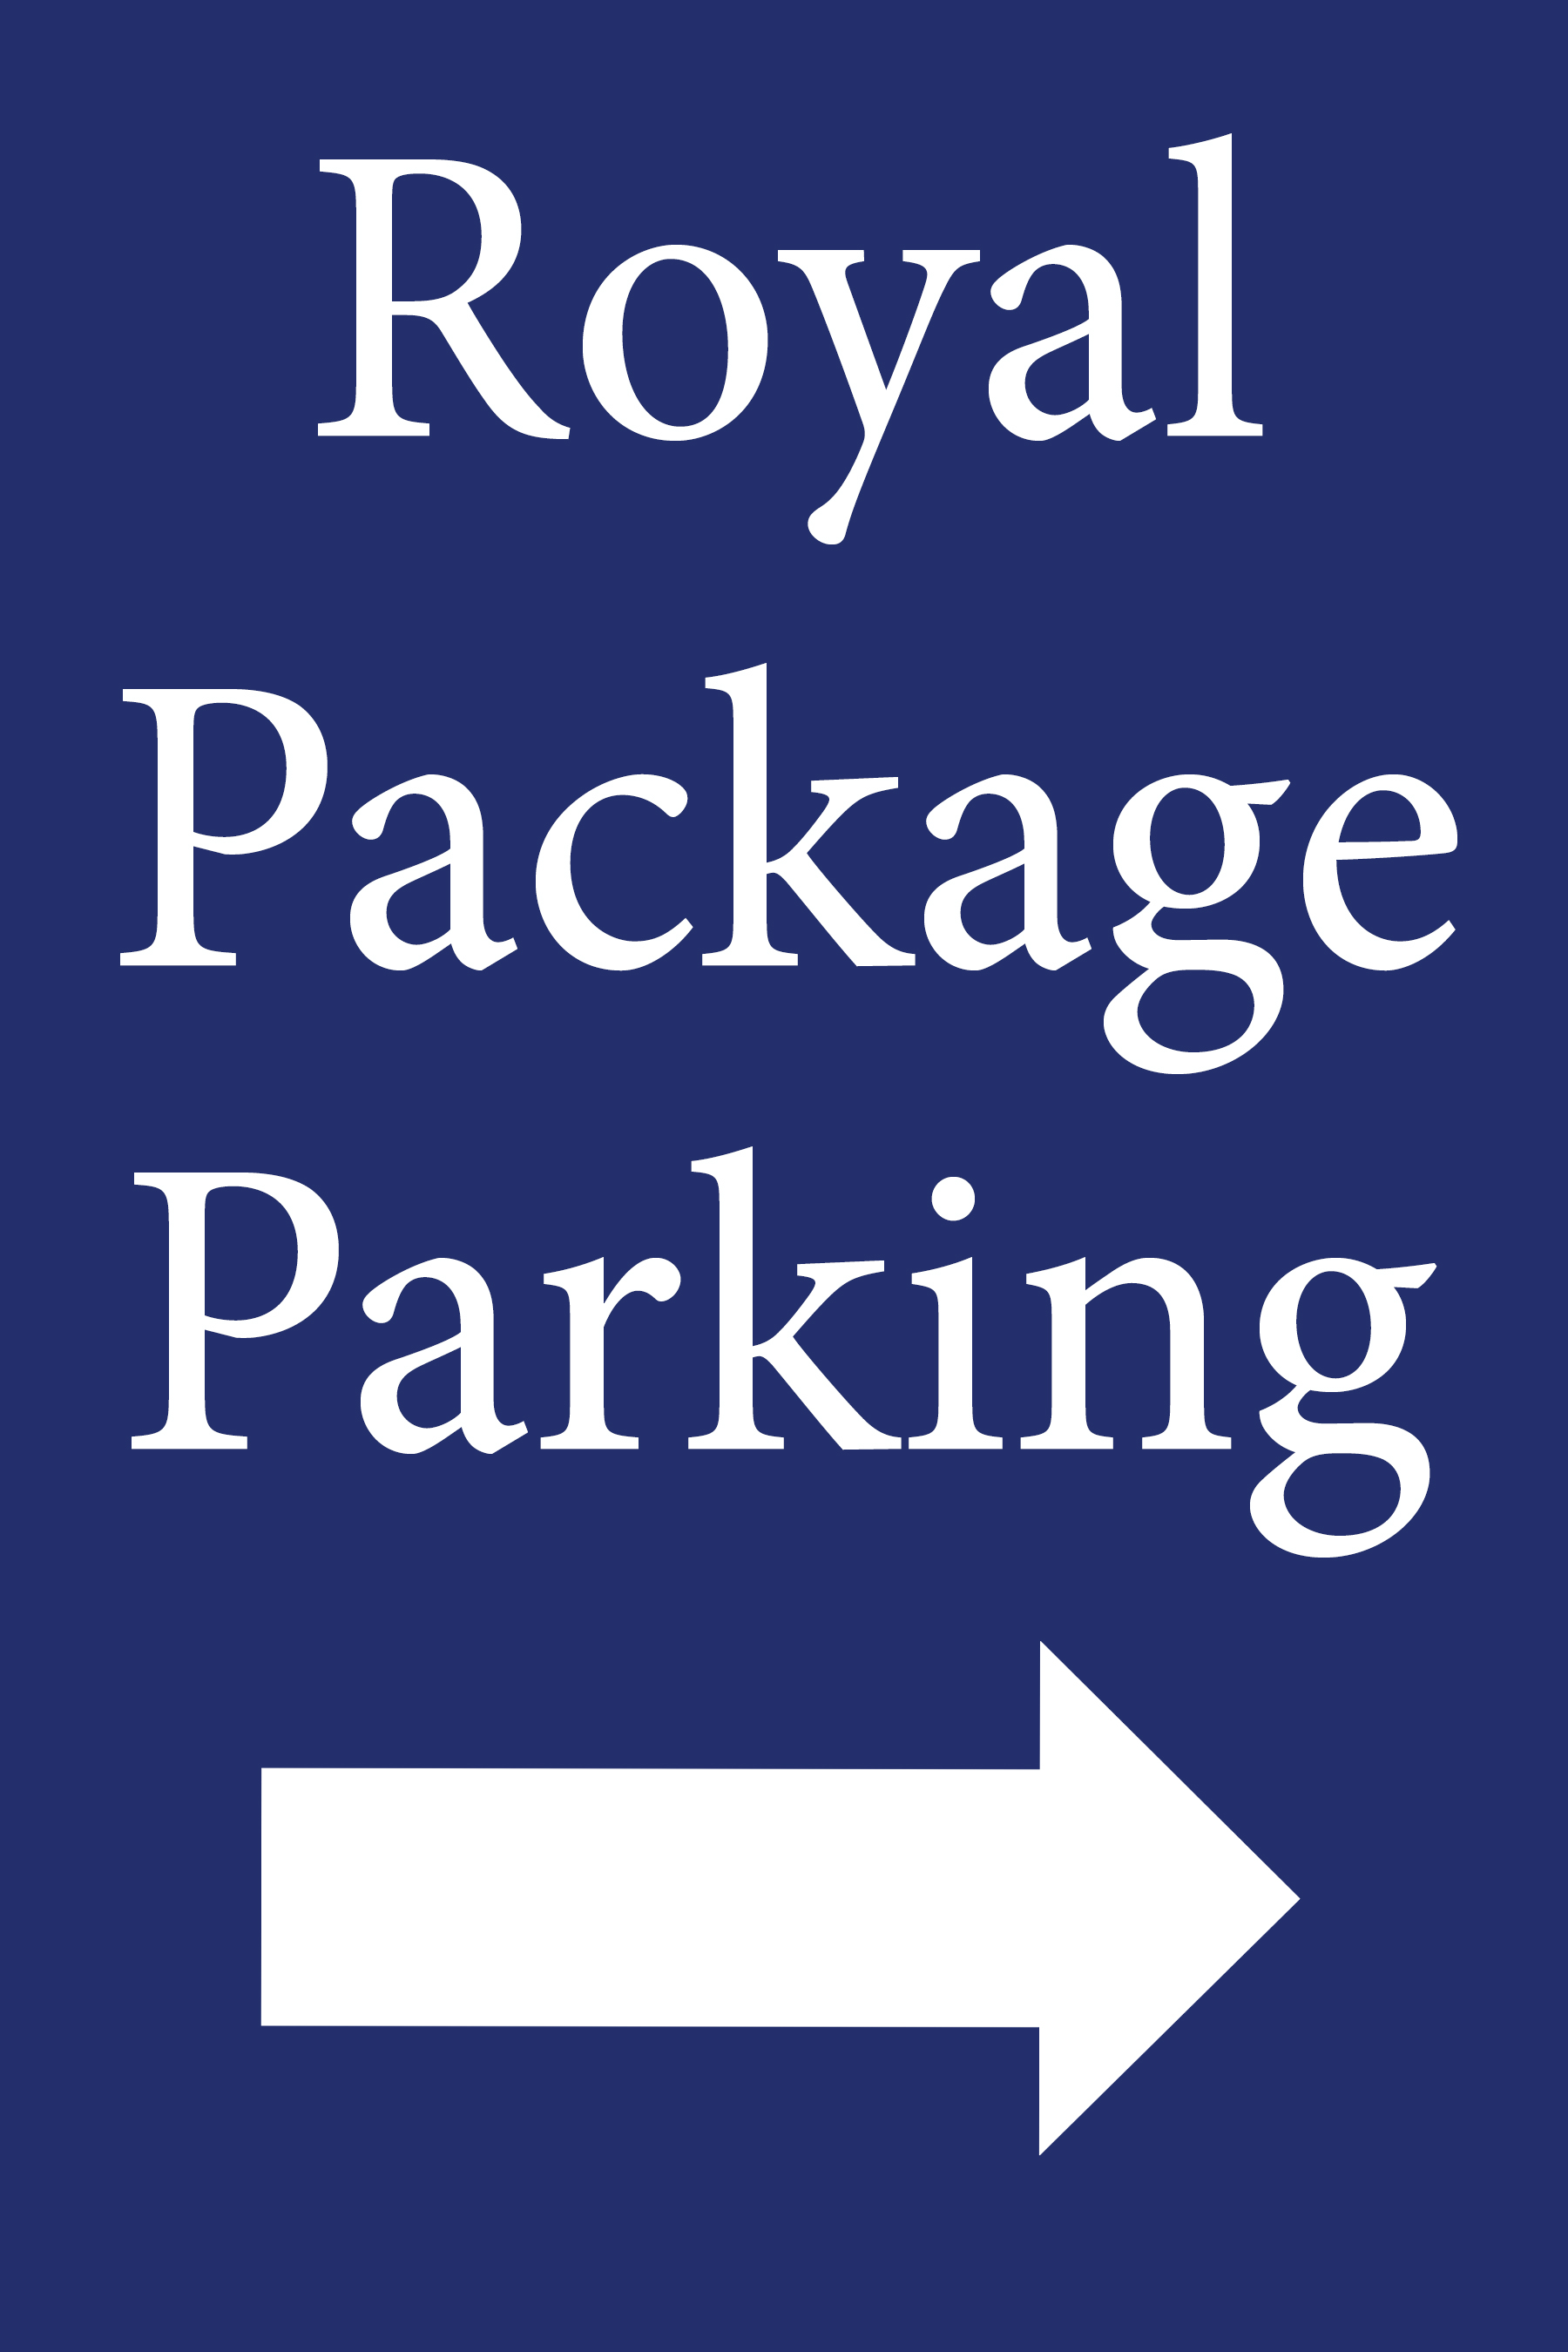 Royal_parking_right_arrowRGB.jpg